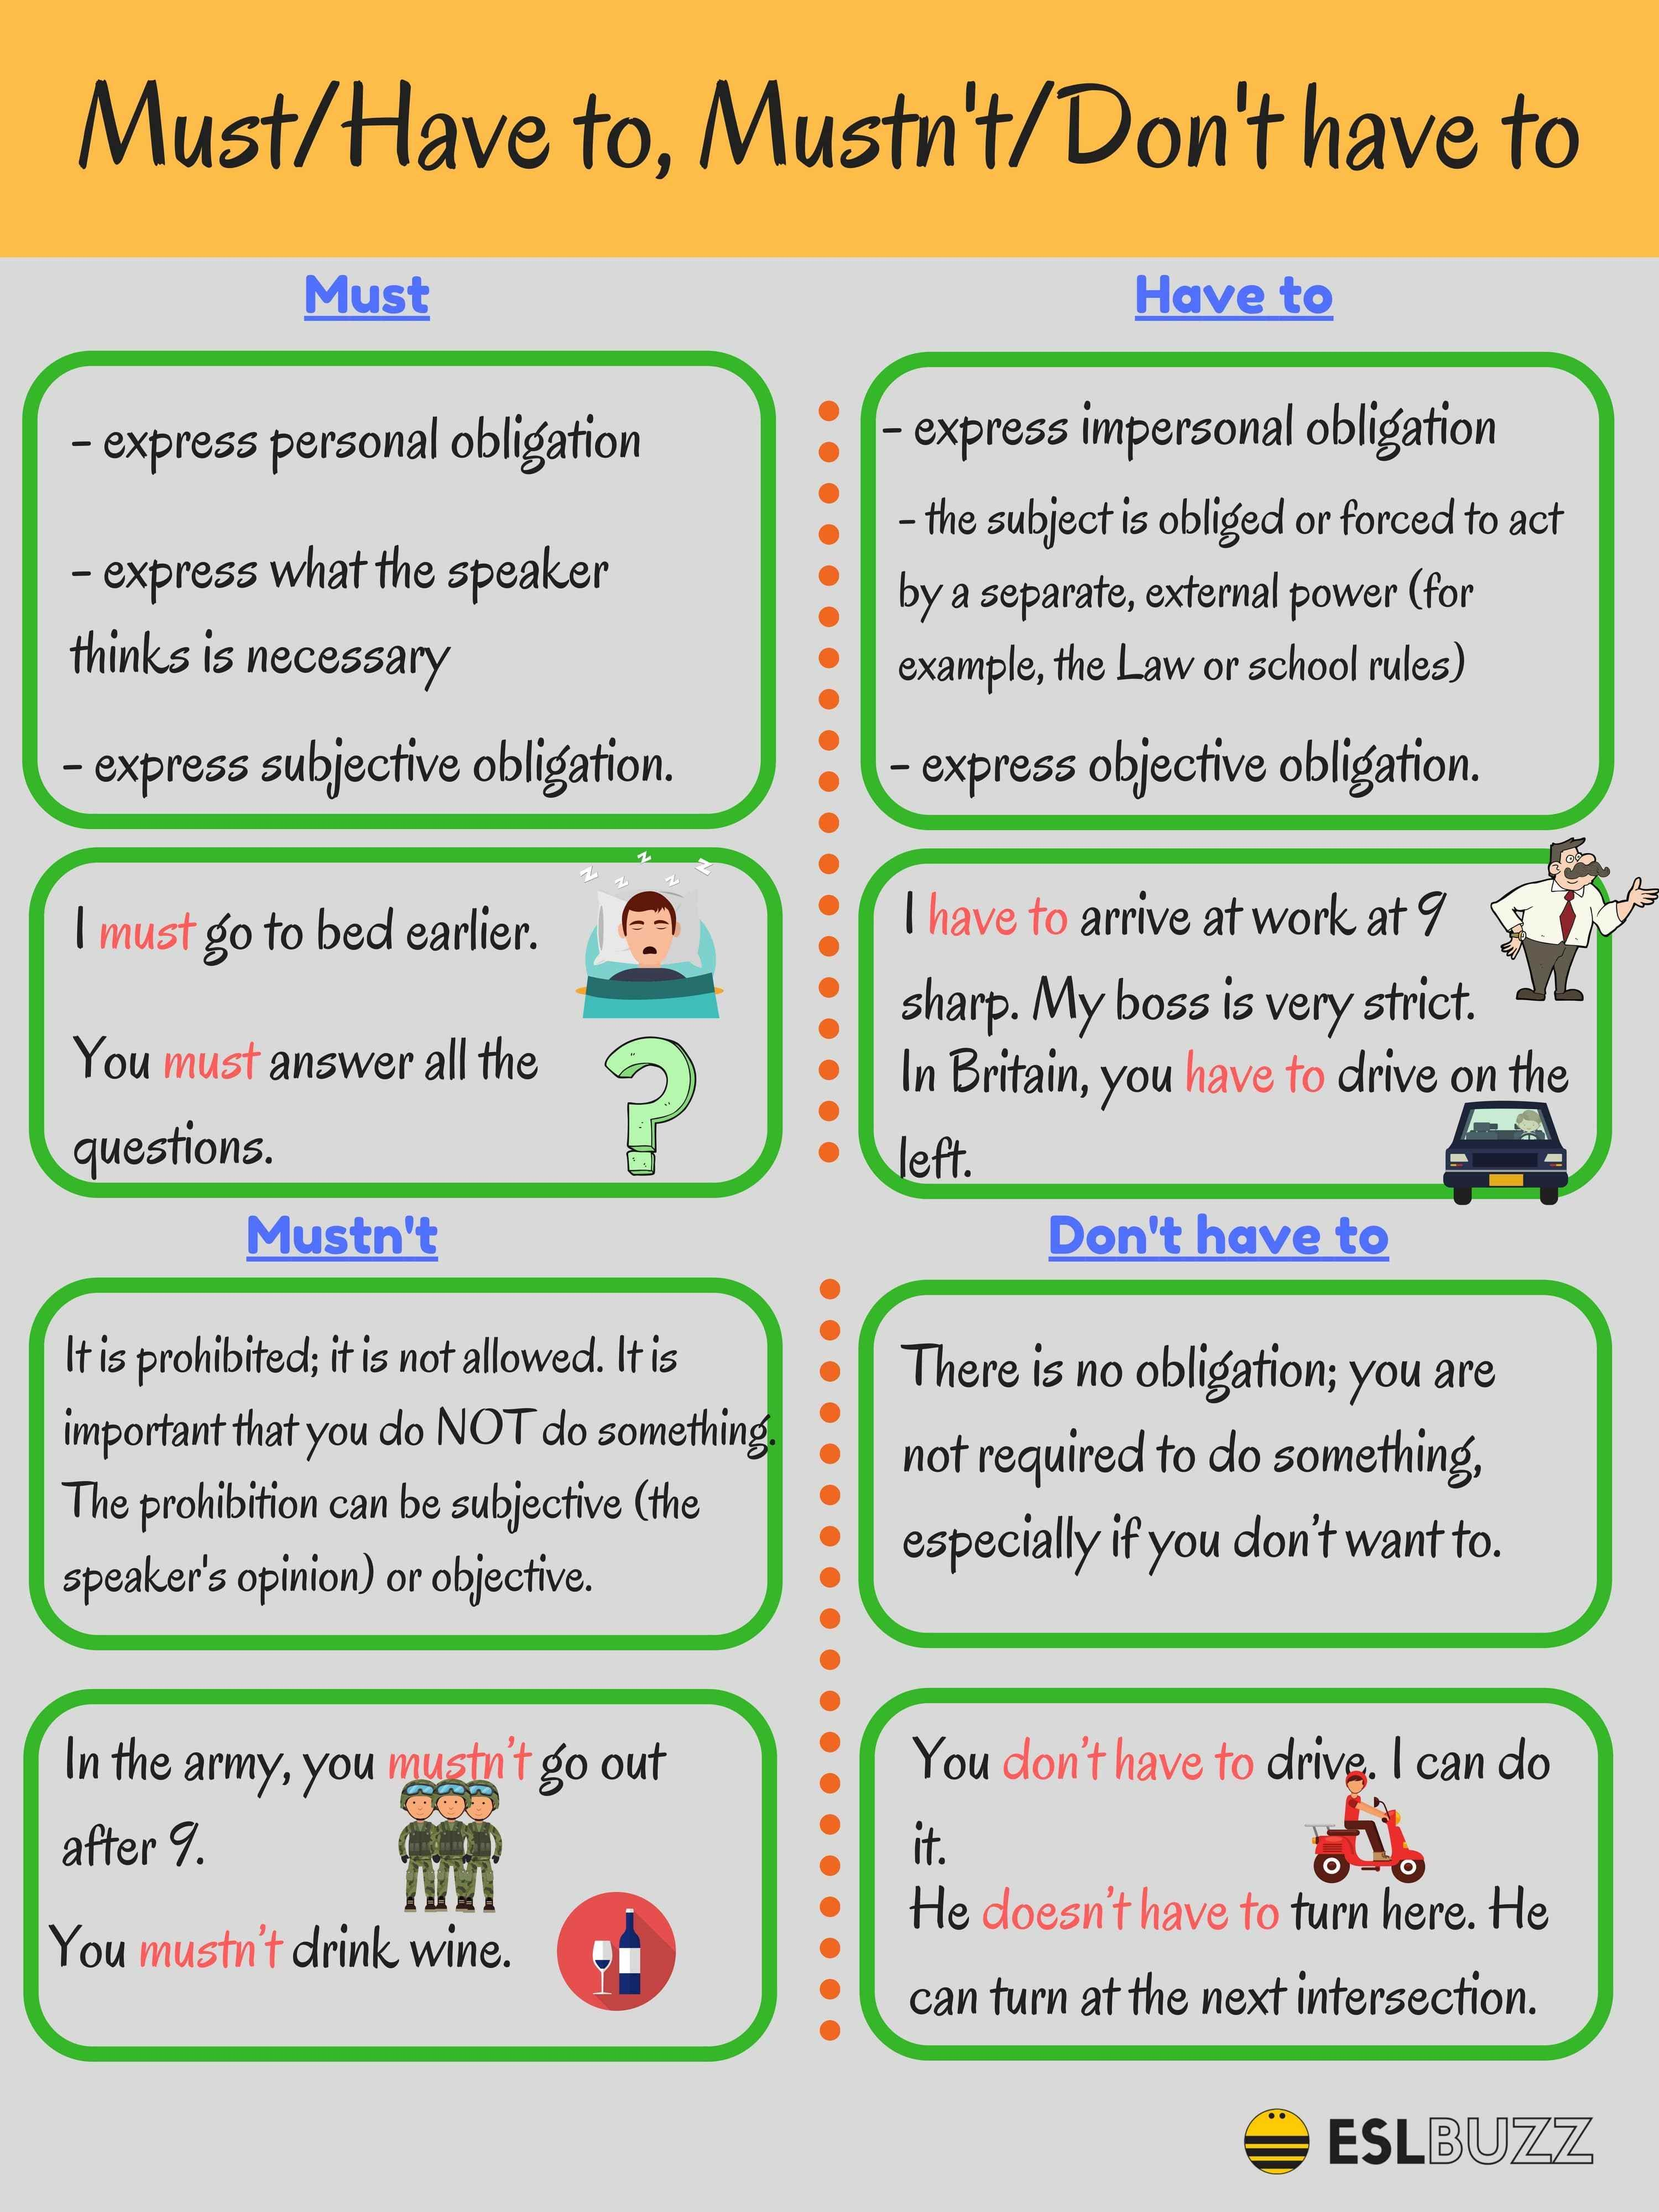 English Grammar Must And Have To Mustn T And Don T Have